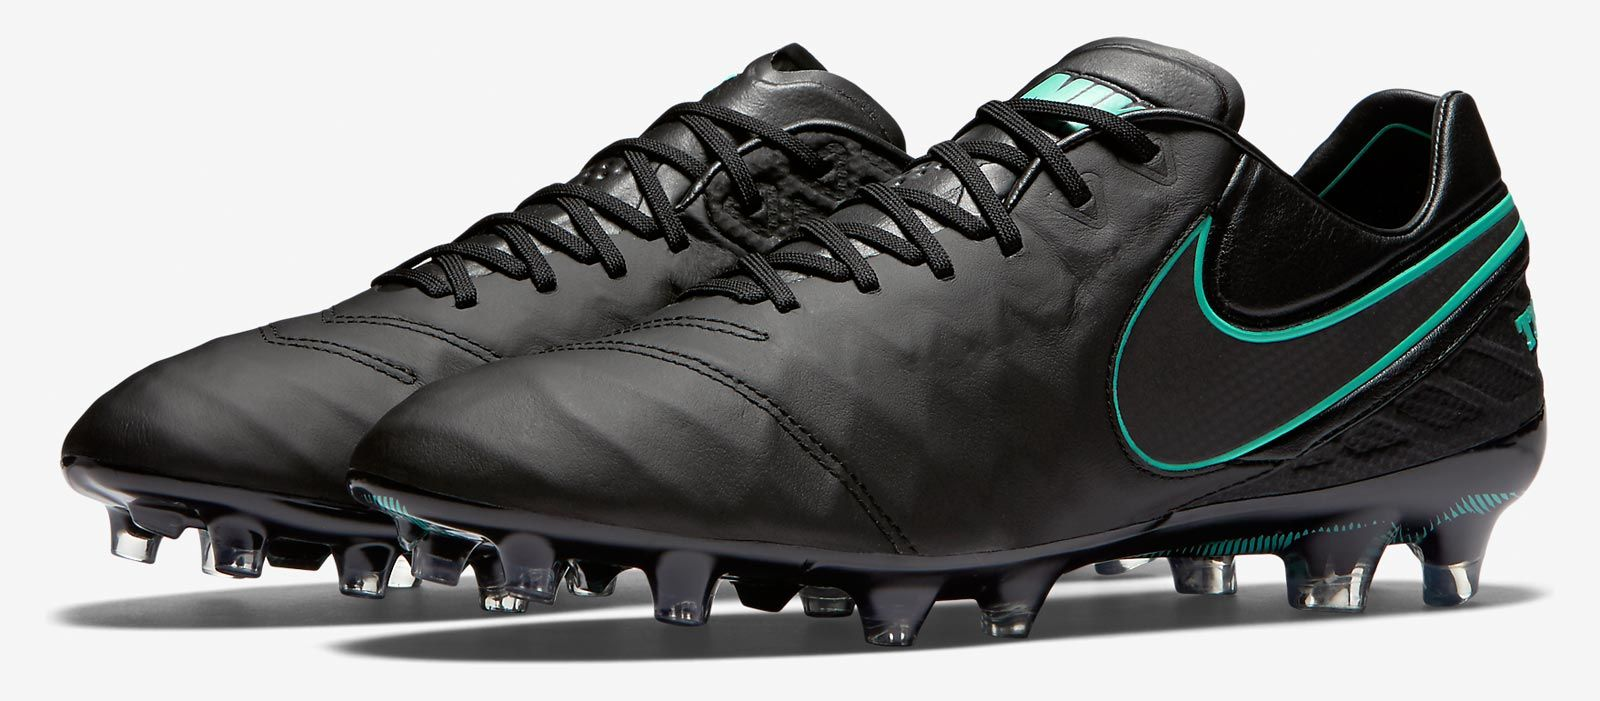 newest collection 7240e ade05 Black Nike Tiempo Legend 6 2016 Boots Revealed - Footy ...